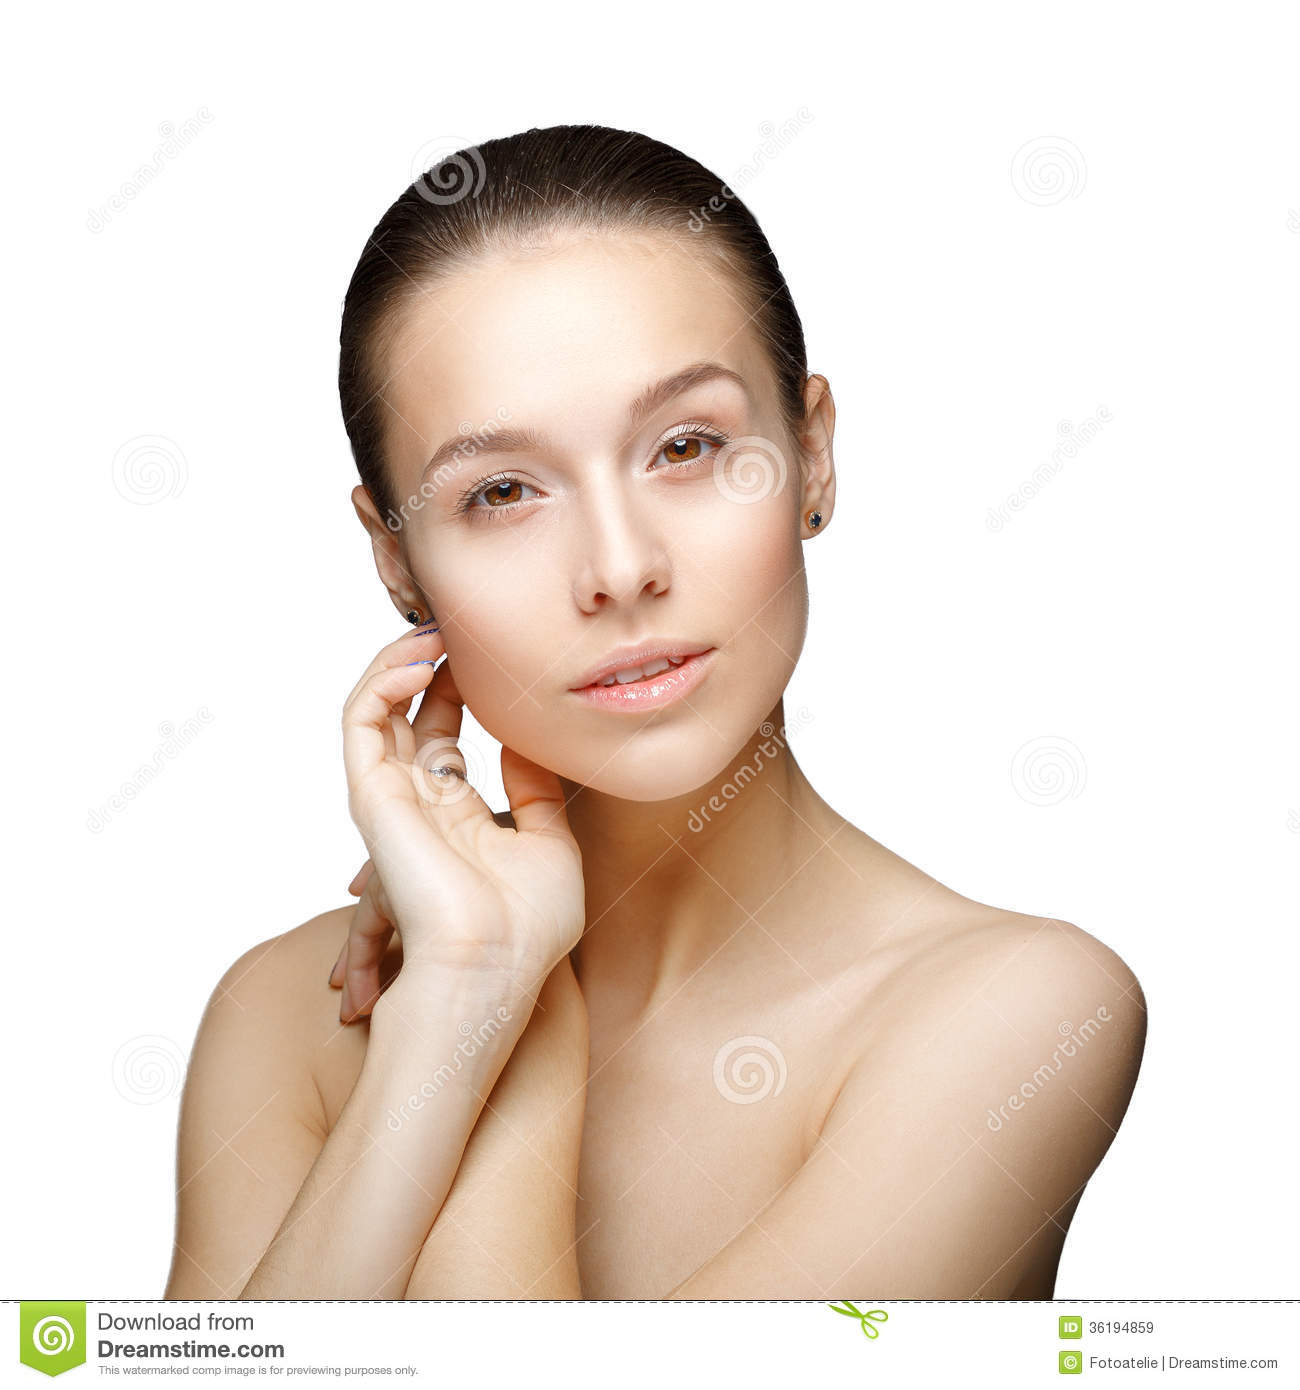 on White Background. Pure Beauty Model. Youth and Skin Care Concept